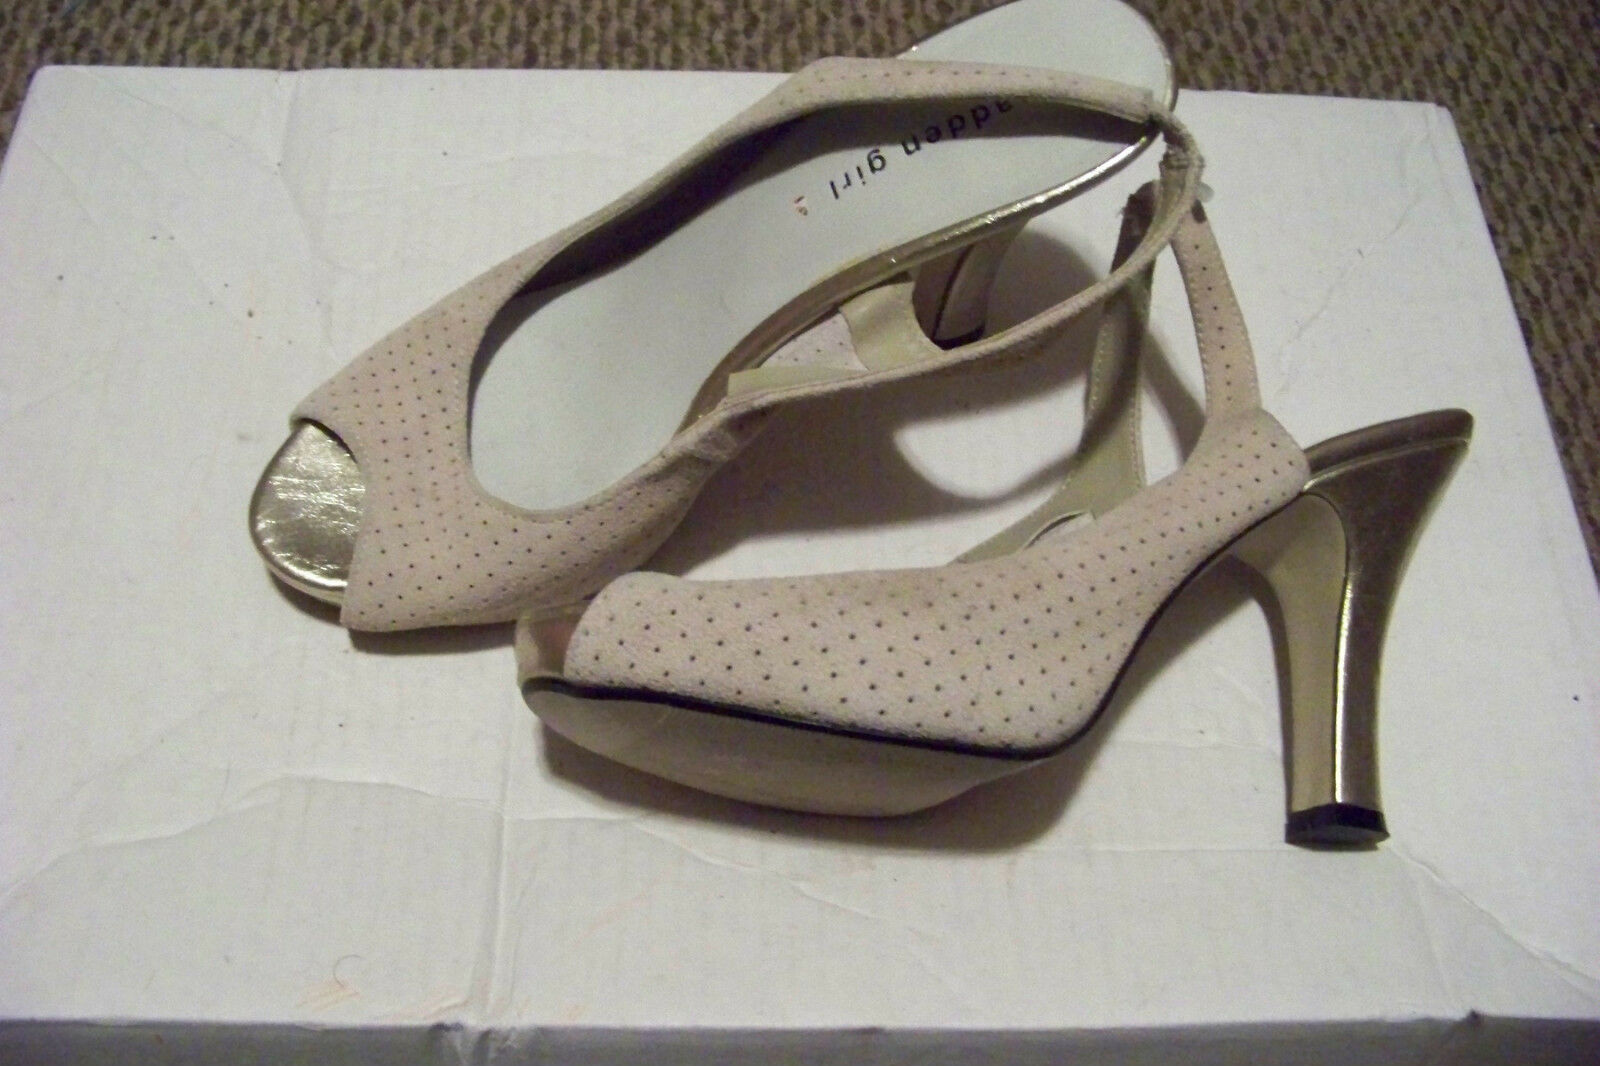 womens madden girl lavendar tan suede leather 9 gold heels shoes size 9 leather 1/2 117d8a